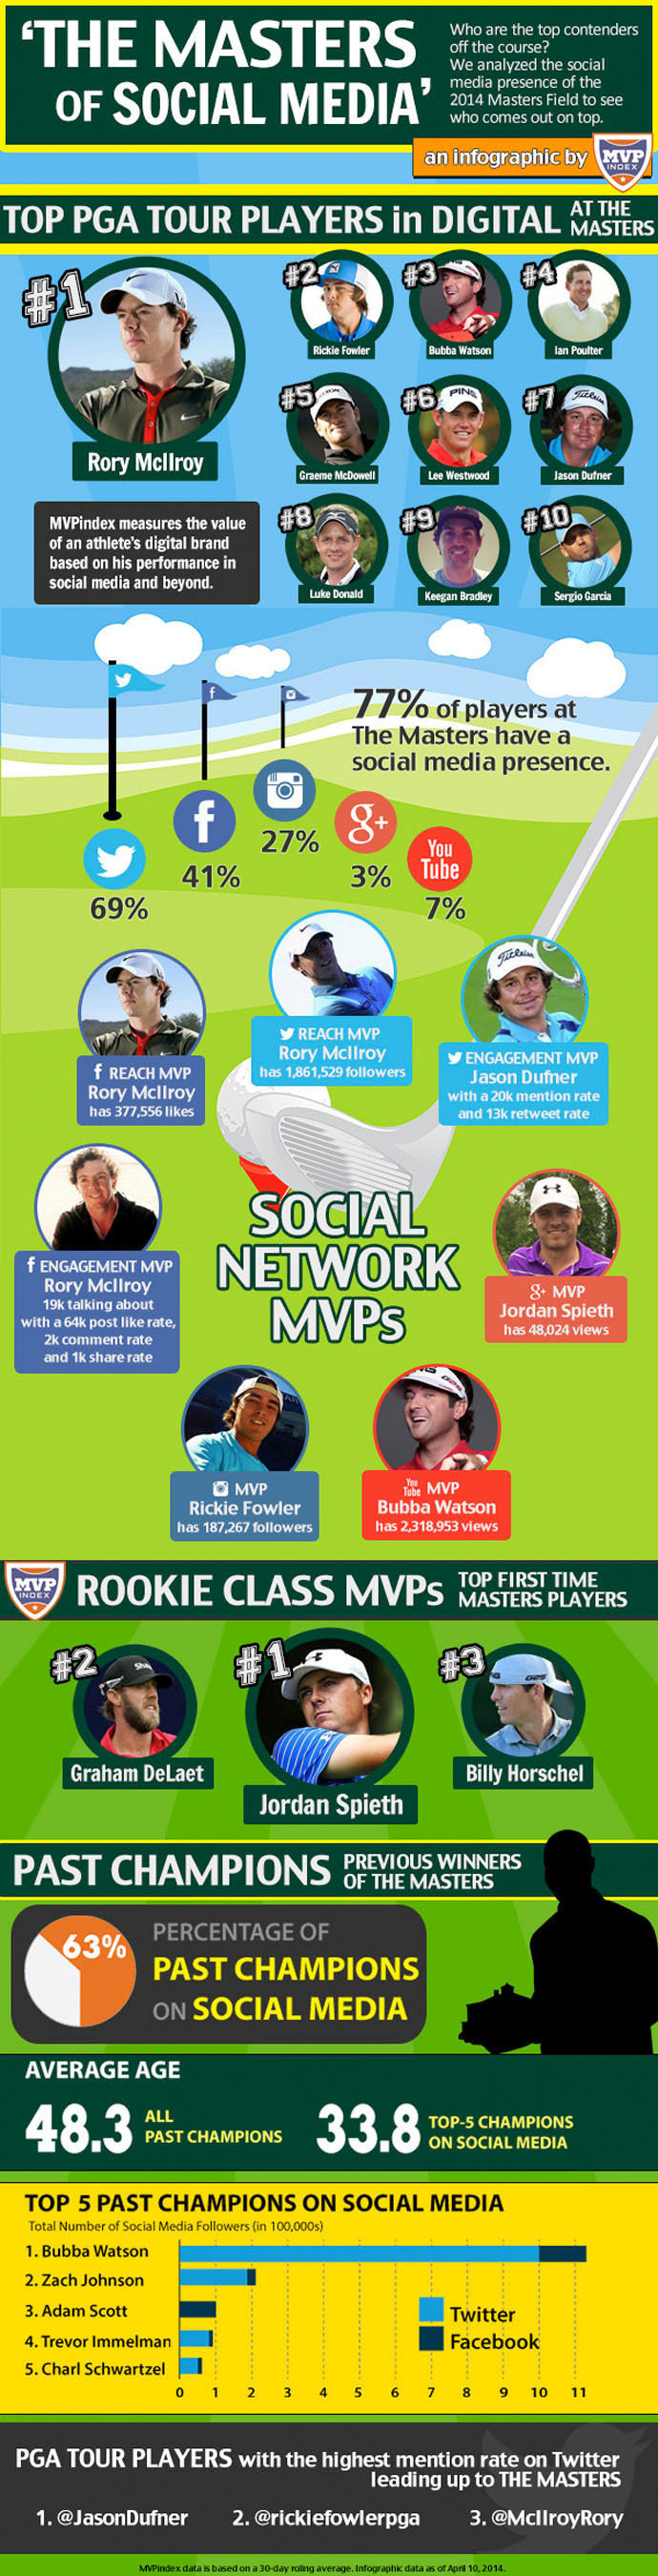 MVPindex's 'The Masters of Social Media' infographic ranks the social media presence of Master contenders off the course.  (PRNewsFoto/Stout Partners, LP)